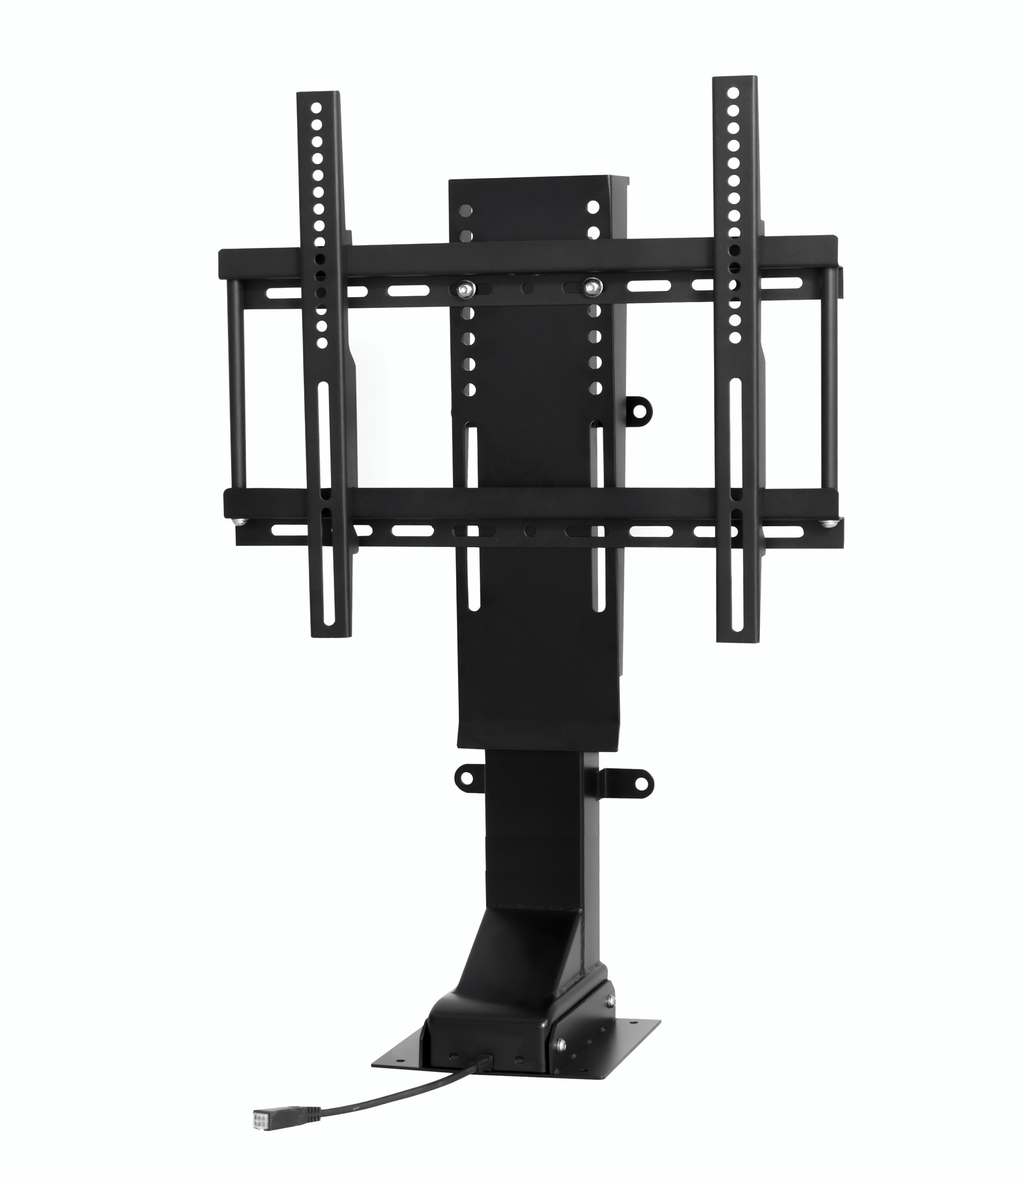 "SRV 2800 Pro 32800 TV Lift Mechanism for 50"" Flat screen TVs - Touchstone Home Products, Inc."